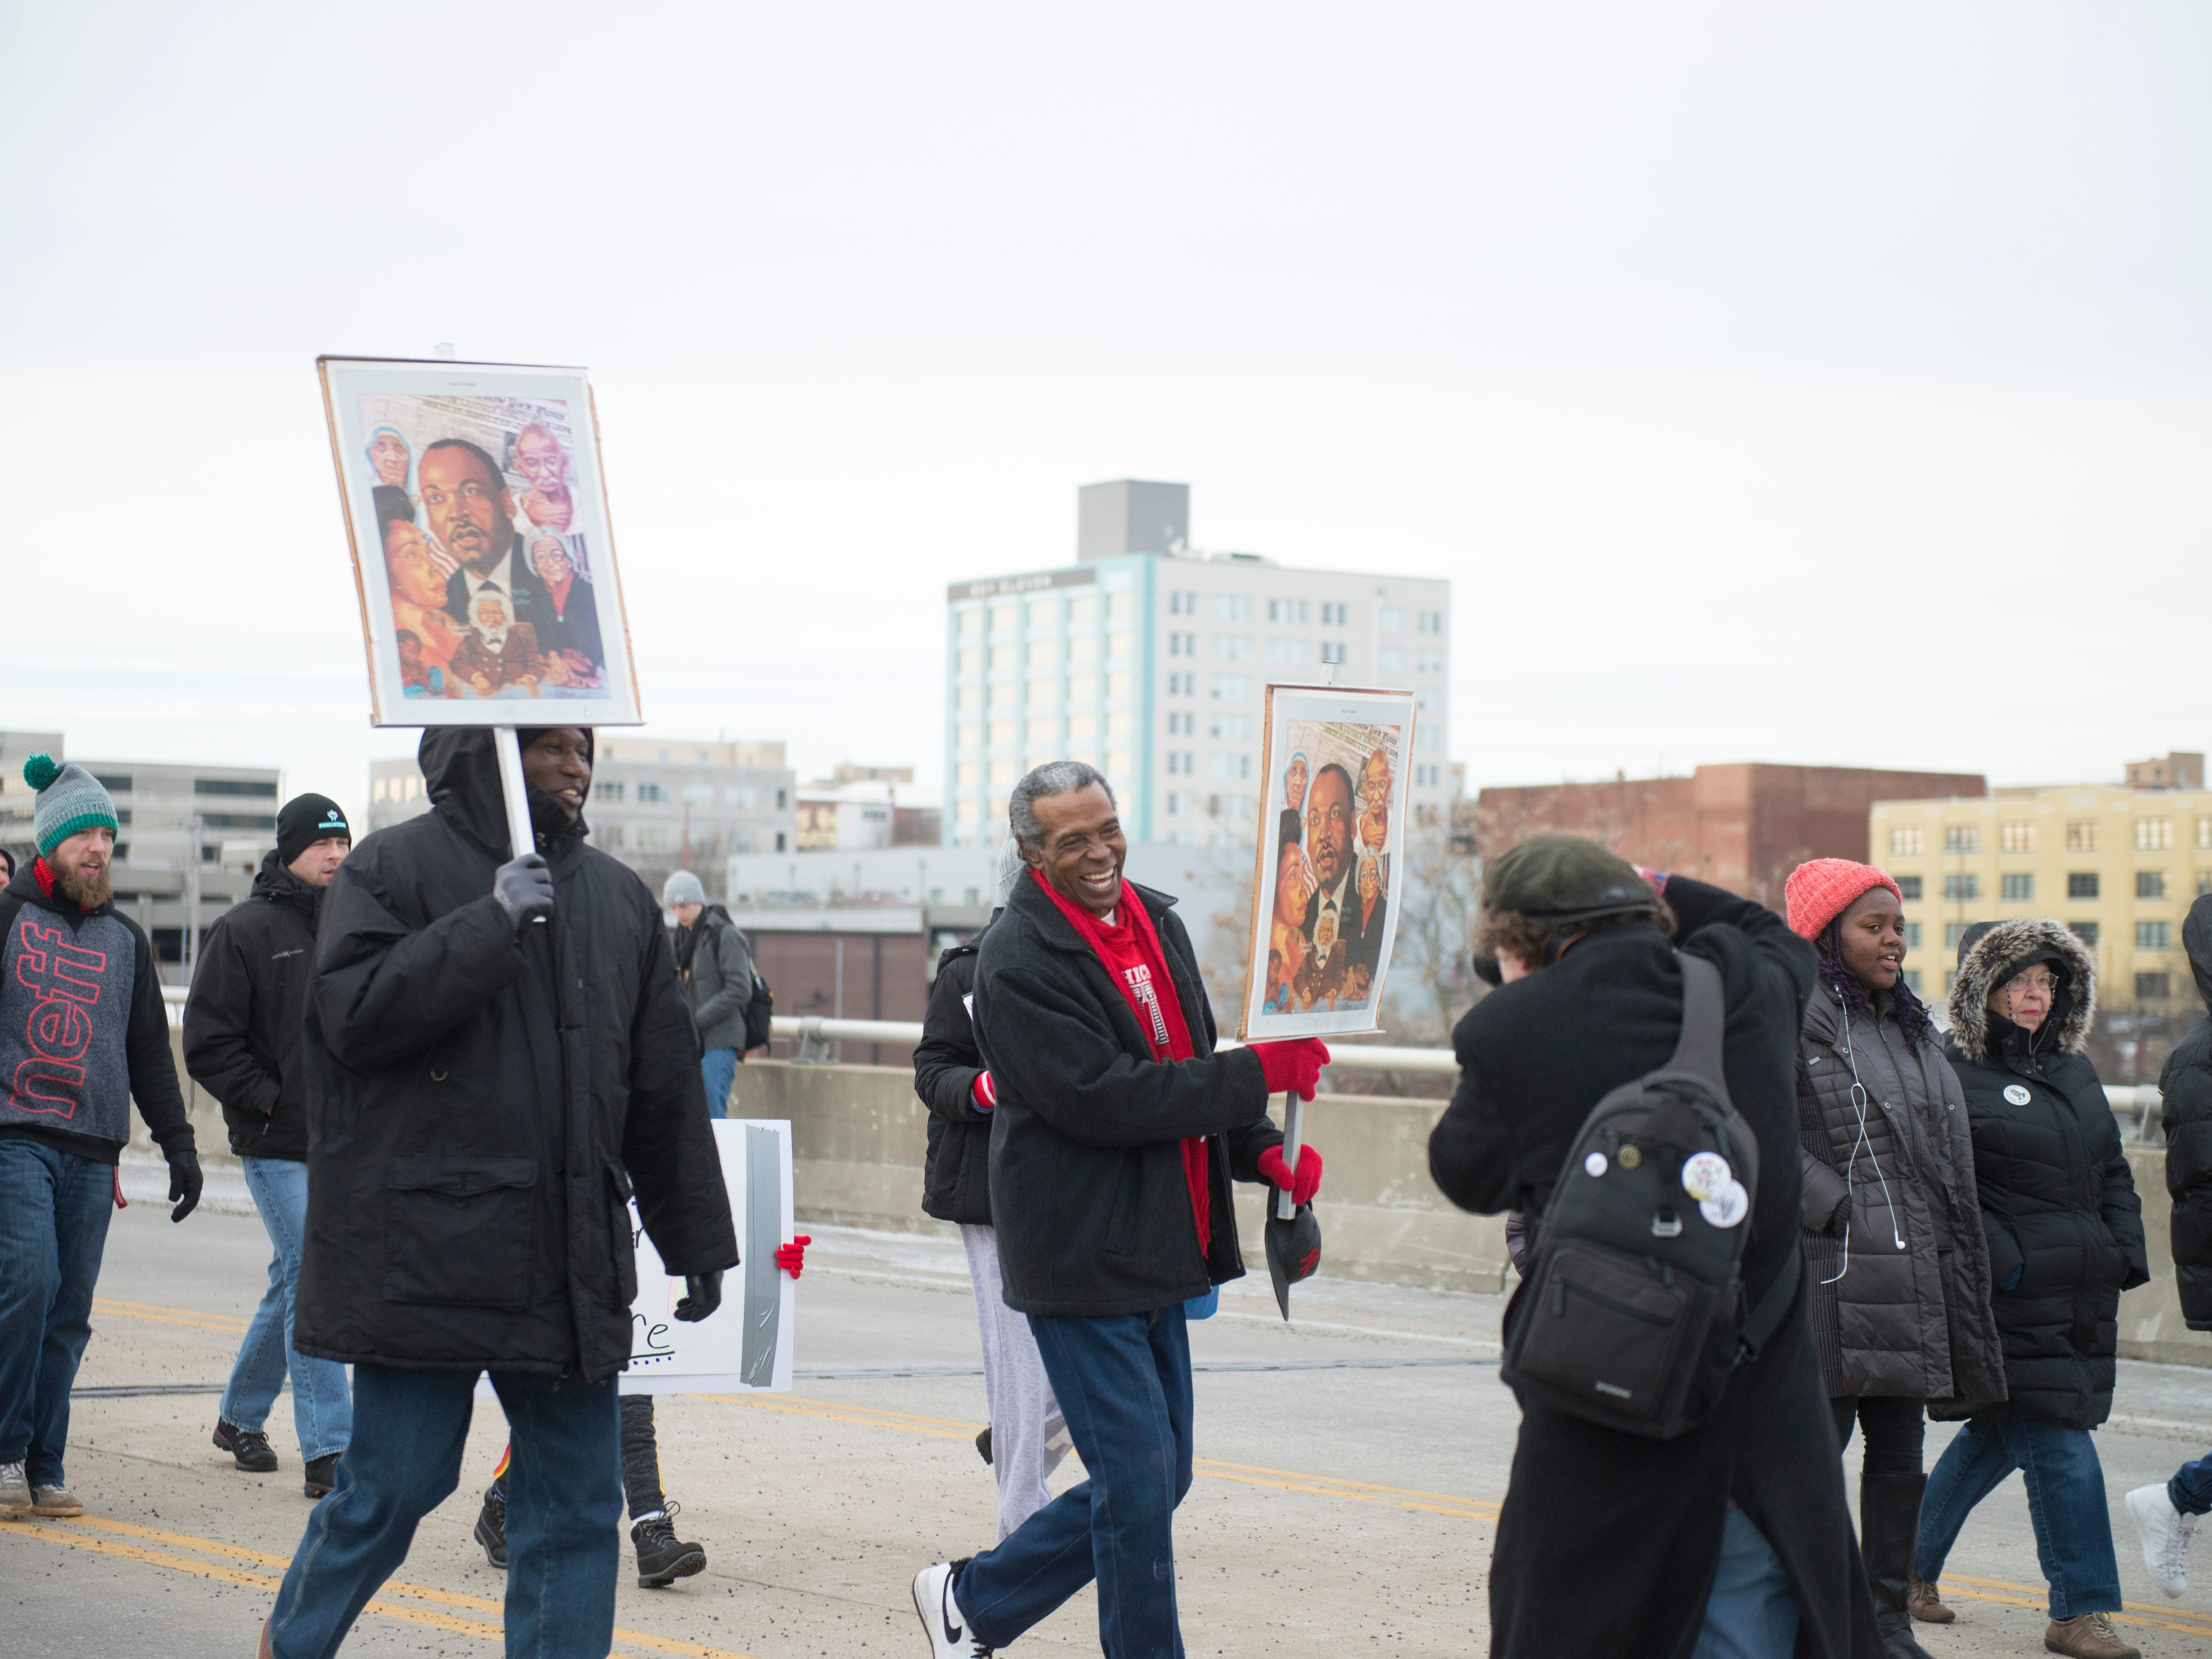 A scene from the Martin Luther King Jr. Day March 2019